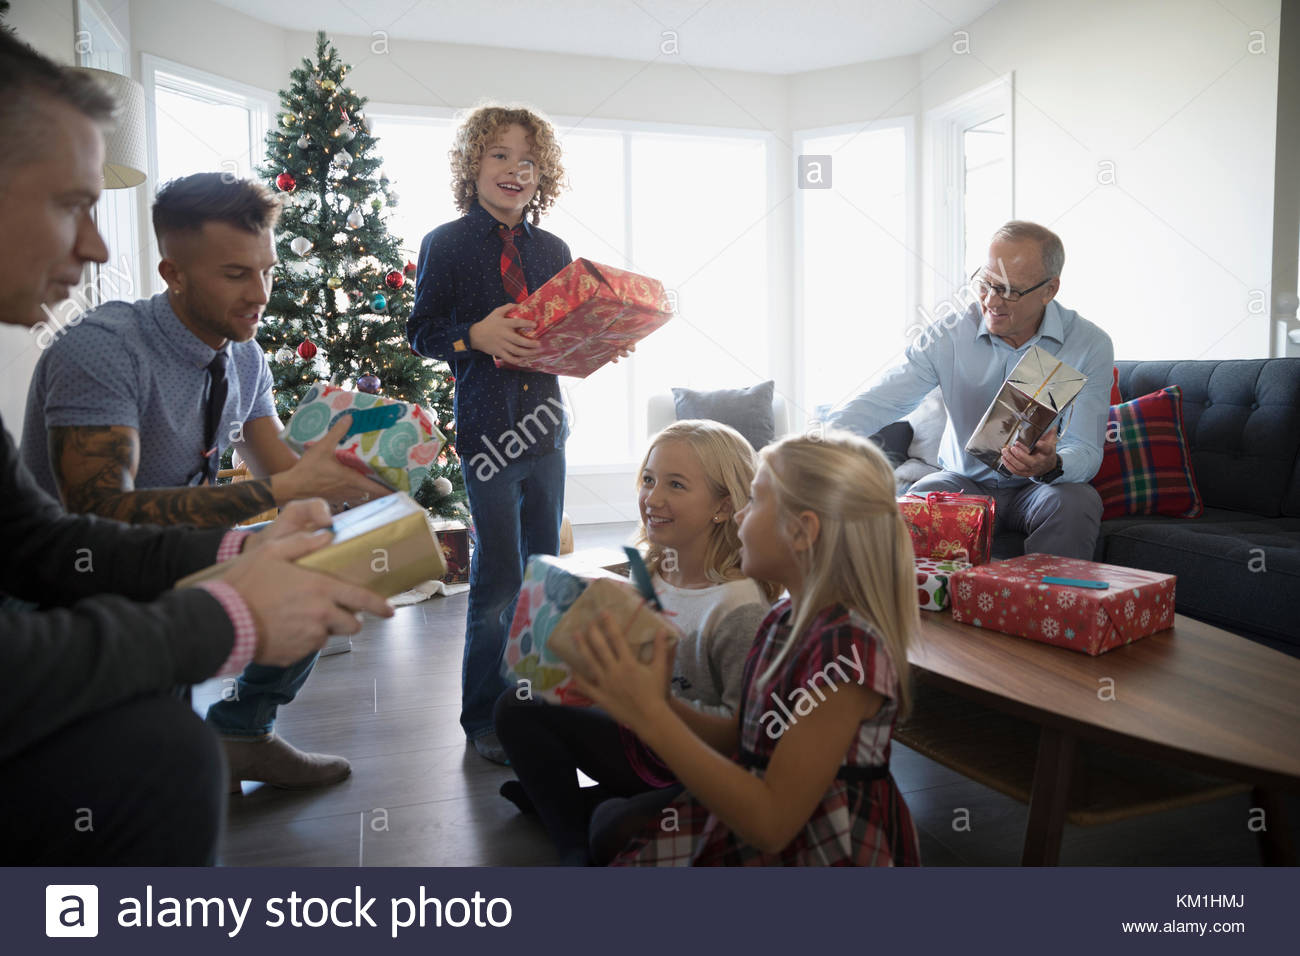 Family opening Christmas gifts in living room - Stock Image